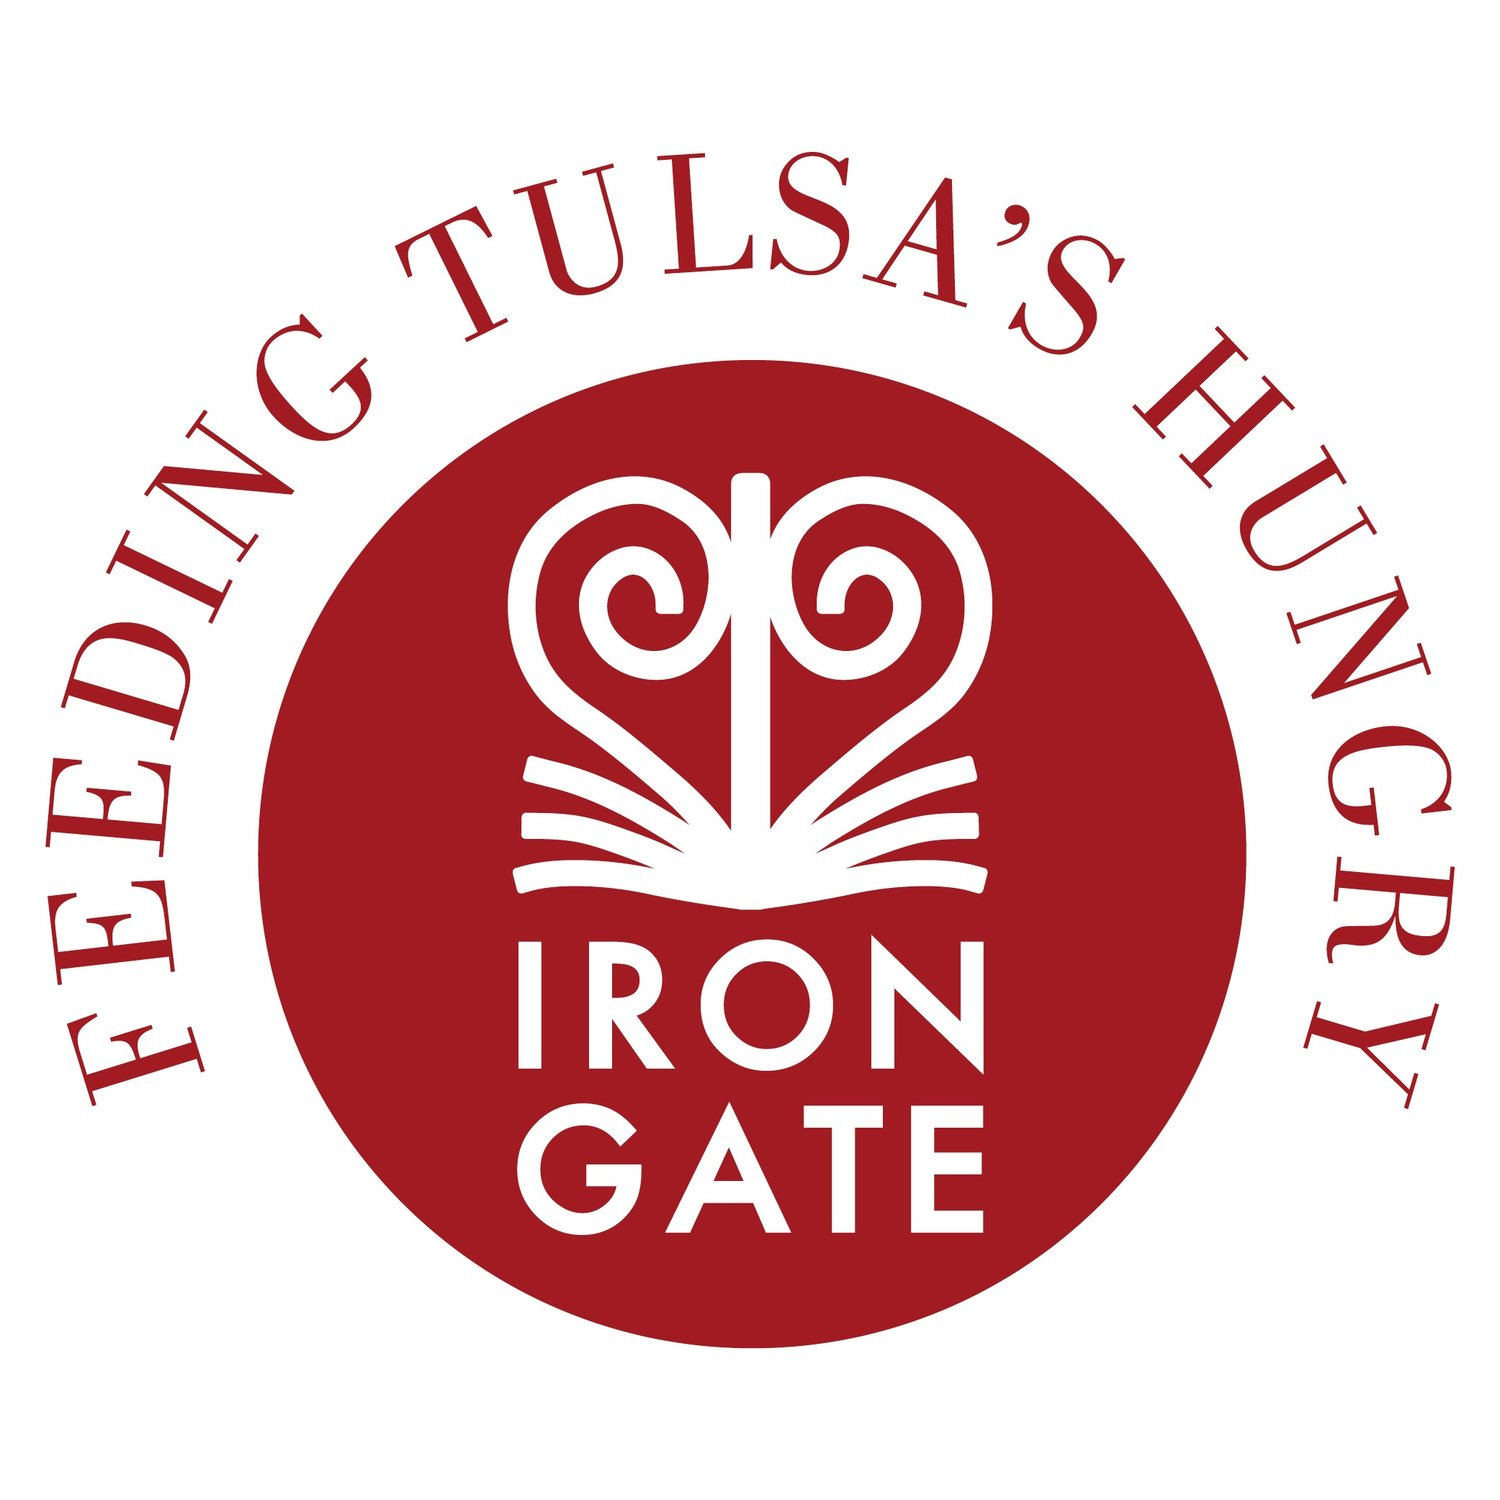 Iron Gate Tulsa